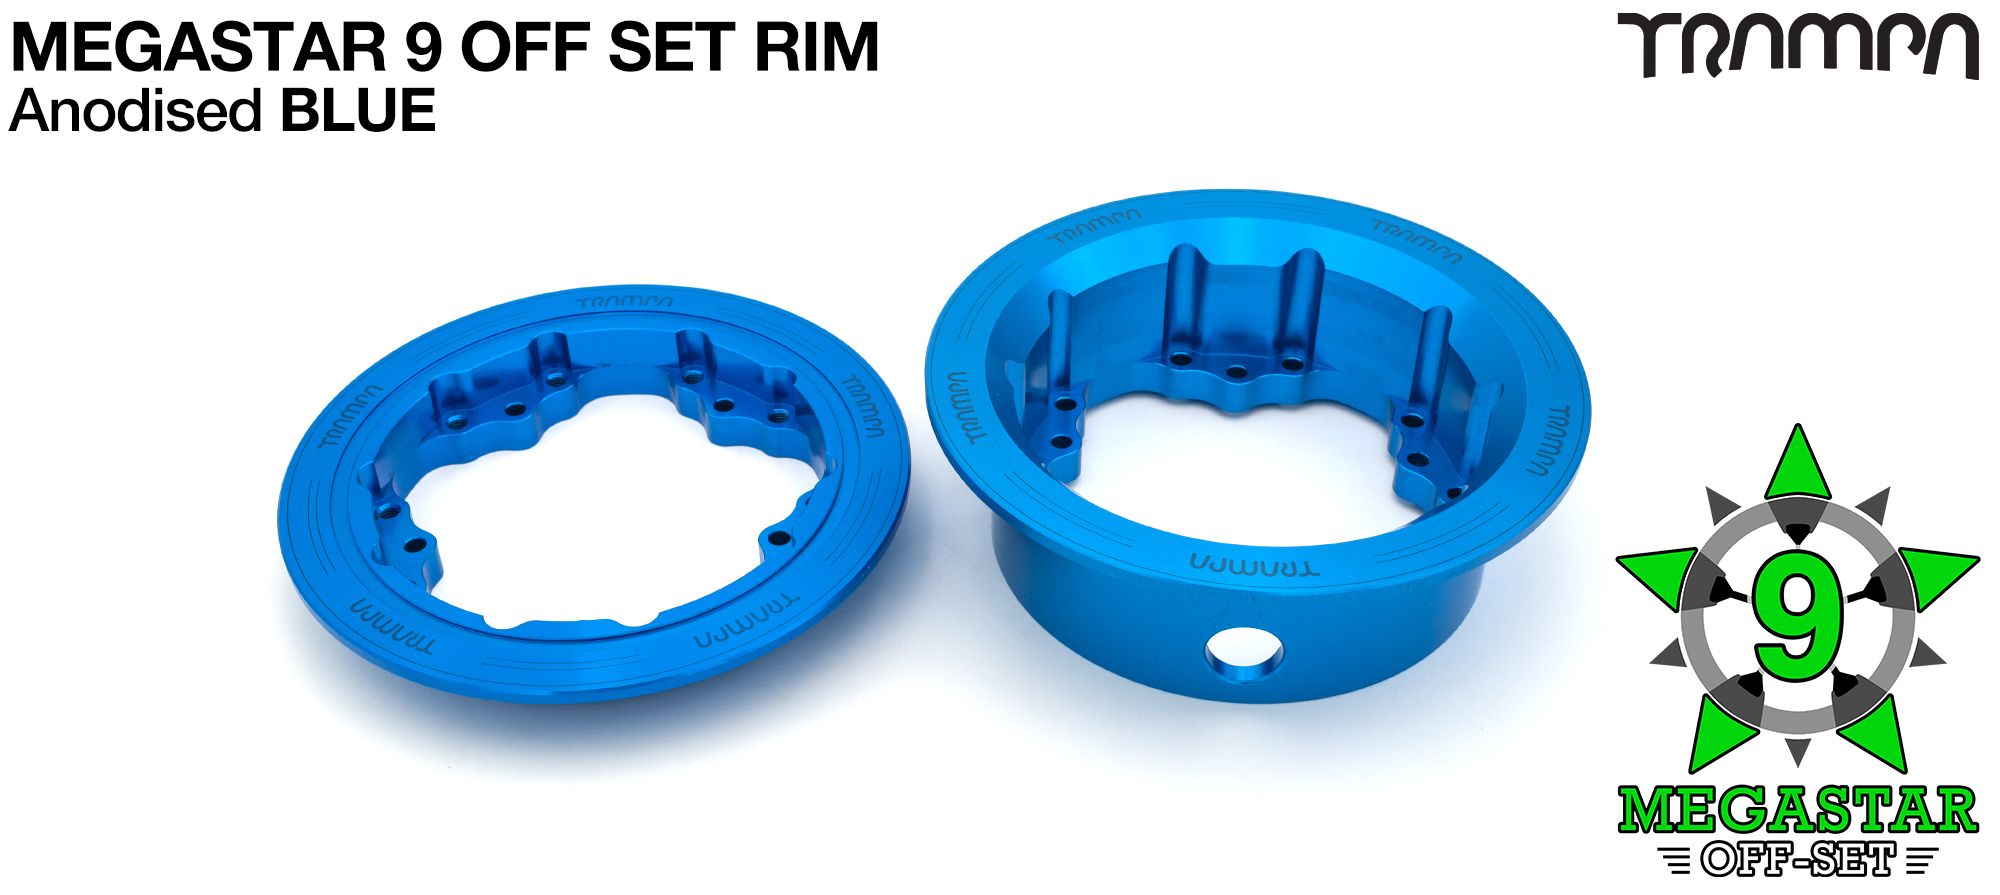 9 inch Deep-Dish MEGASTAR Rims on the REAR - BLUE